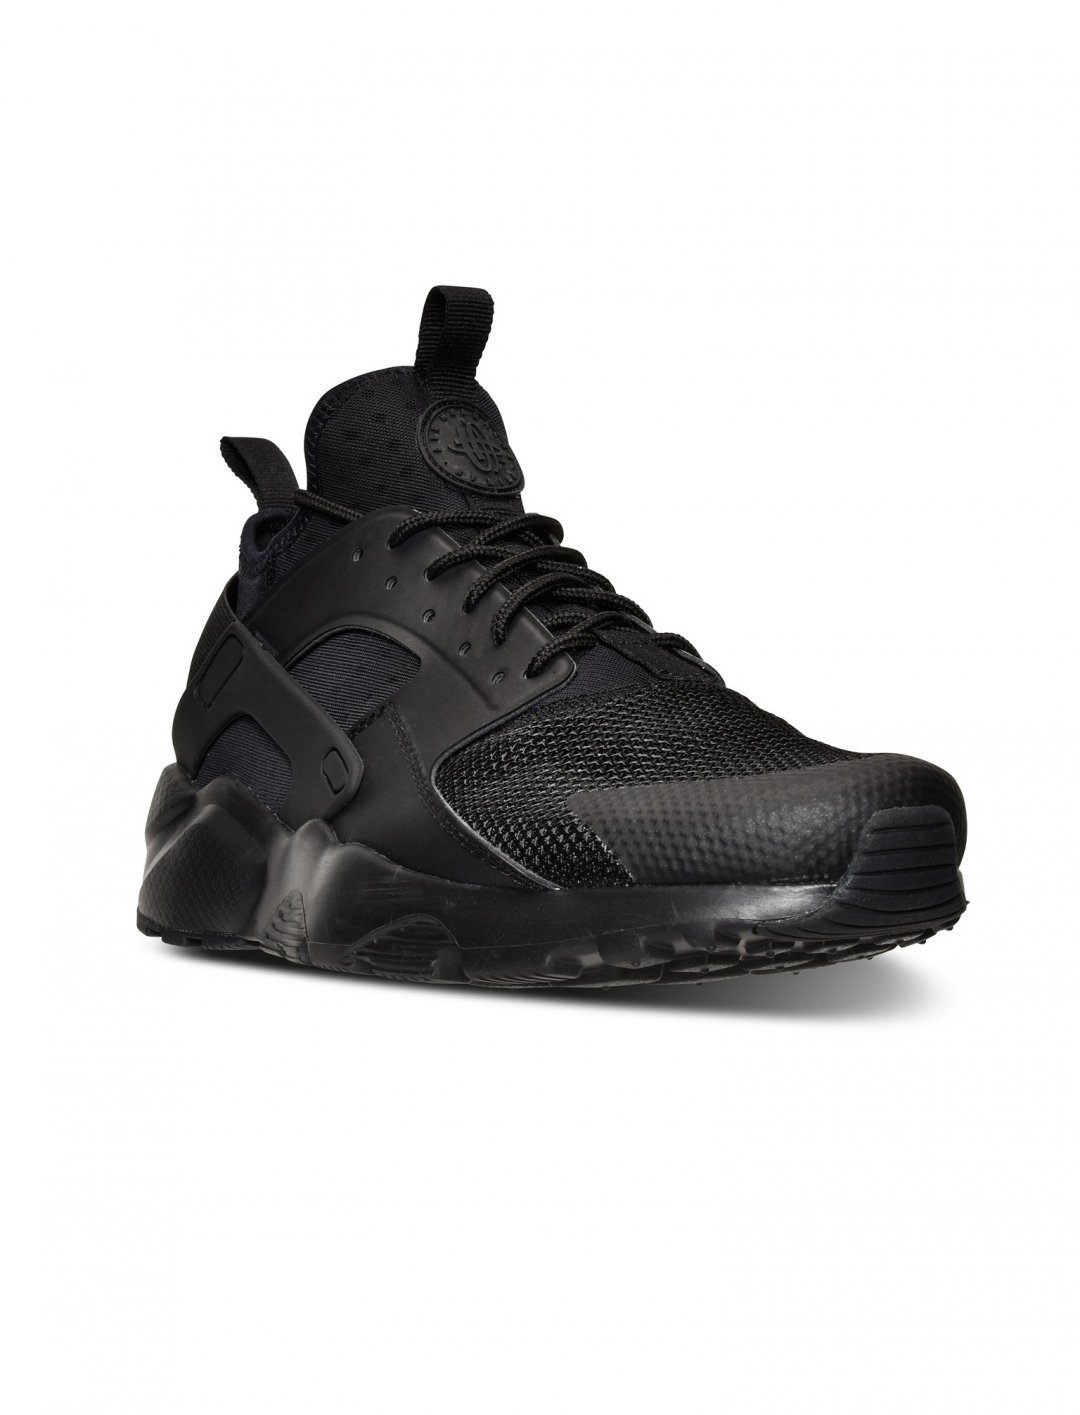 "Nike Air Huarache Ultra Trainers {""id"":12,""product_section_id"":1,""name"":""Shoes"",""order"":12} Nike"